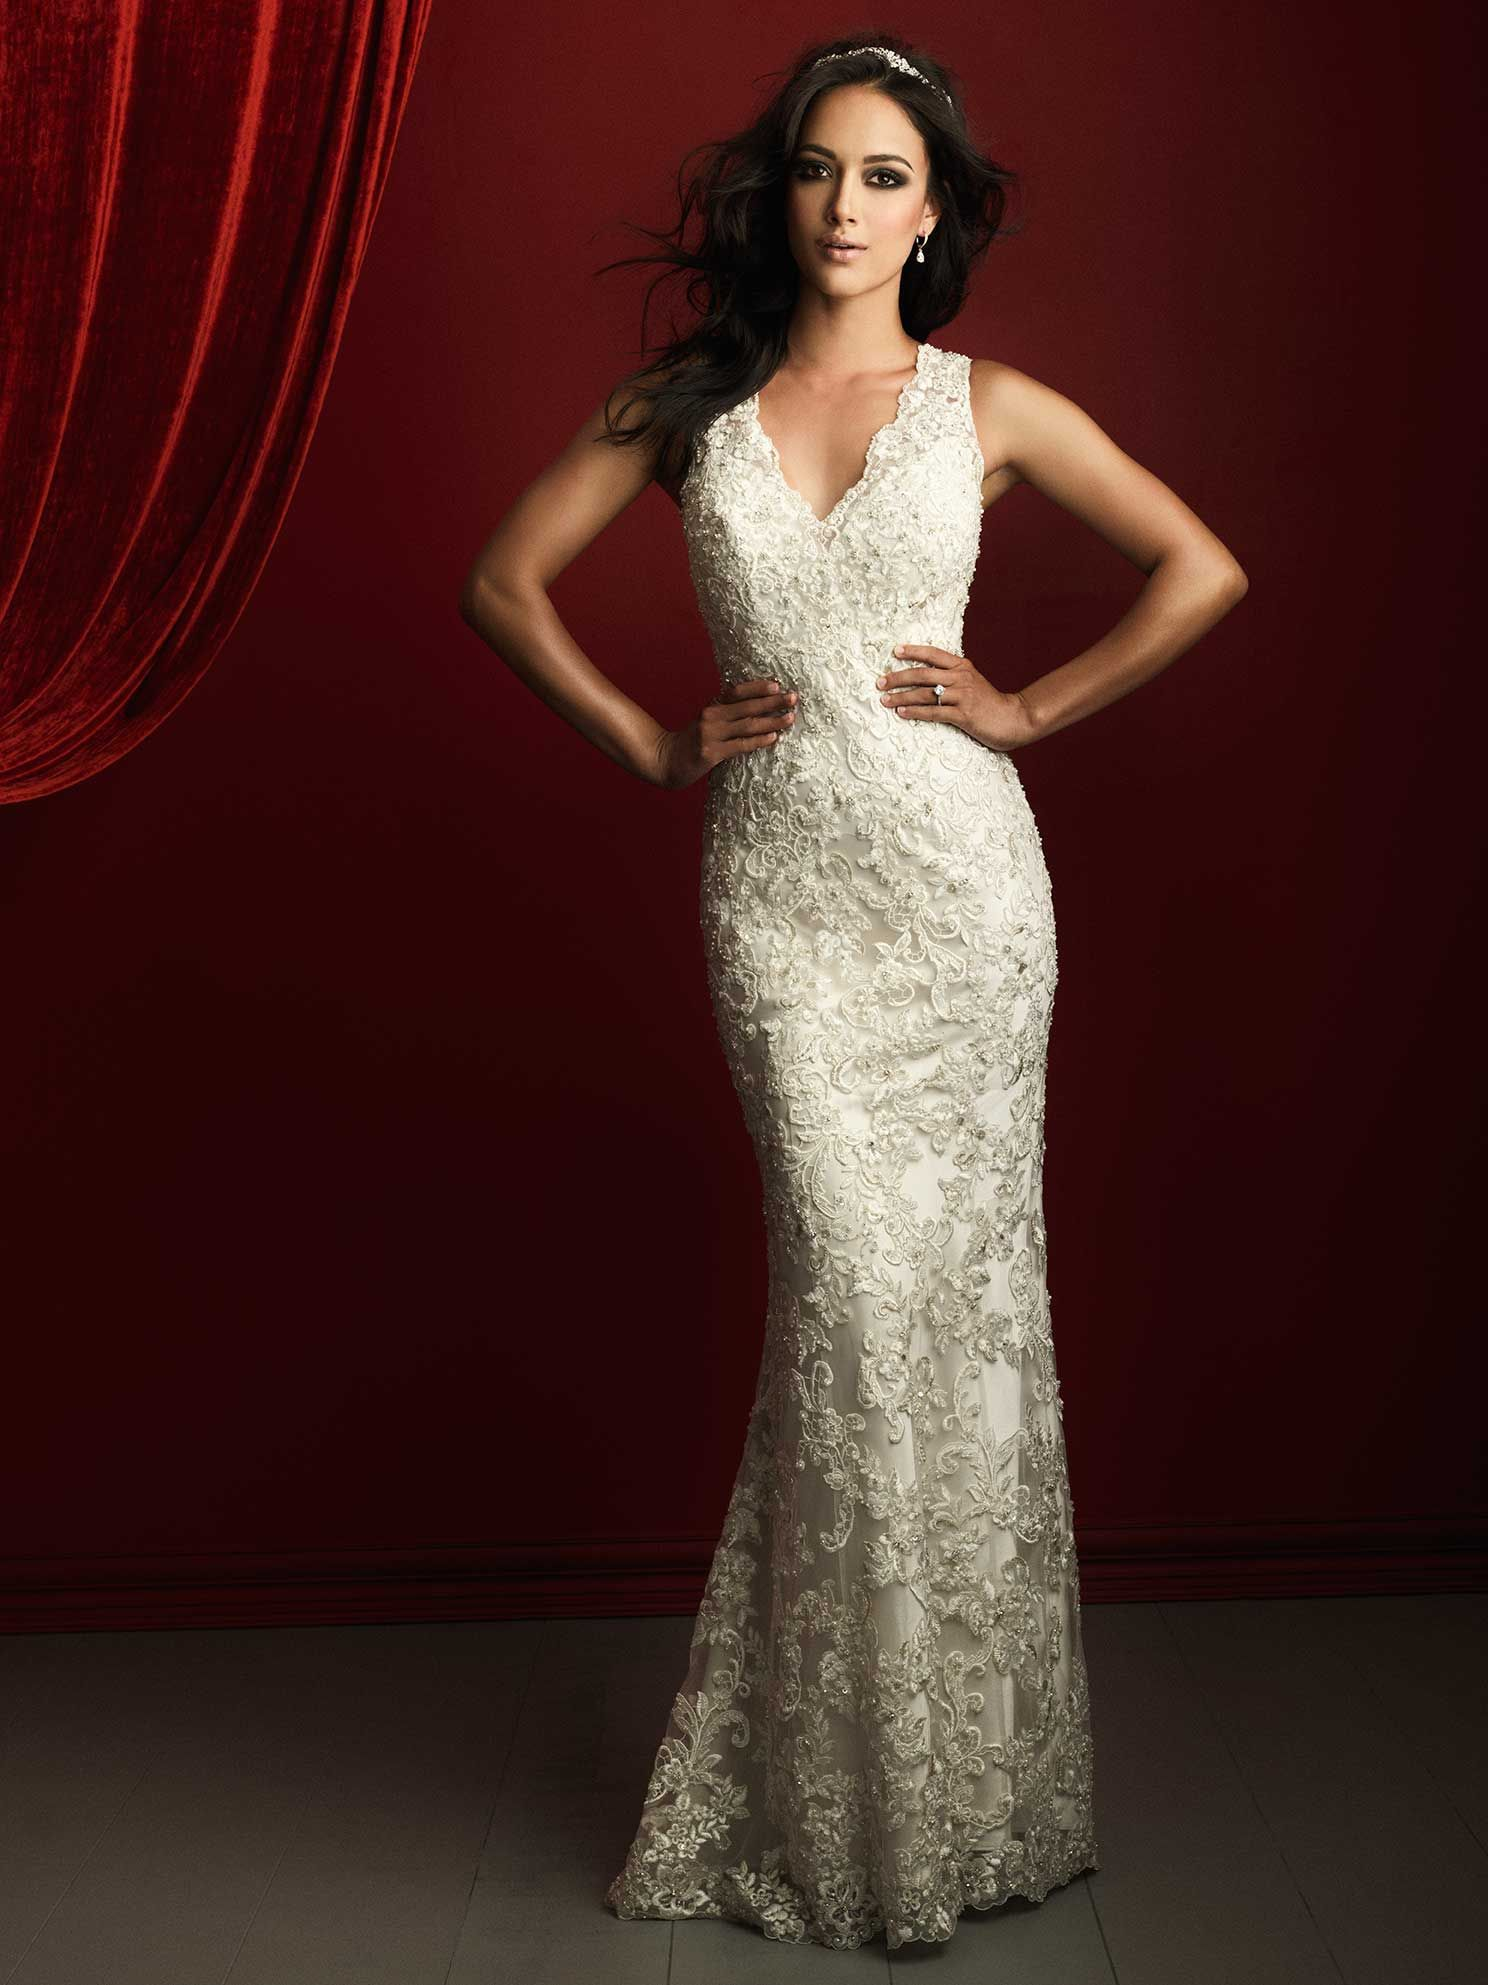 View the allure couture collection at bella sera bridal occasion view the allure couture collection at bella sera bridal occasion junglespirit Gallery